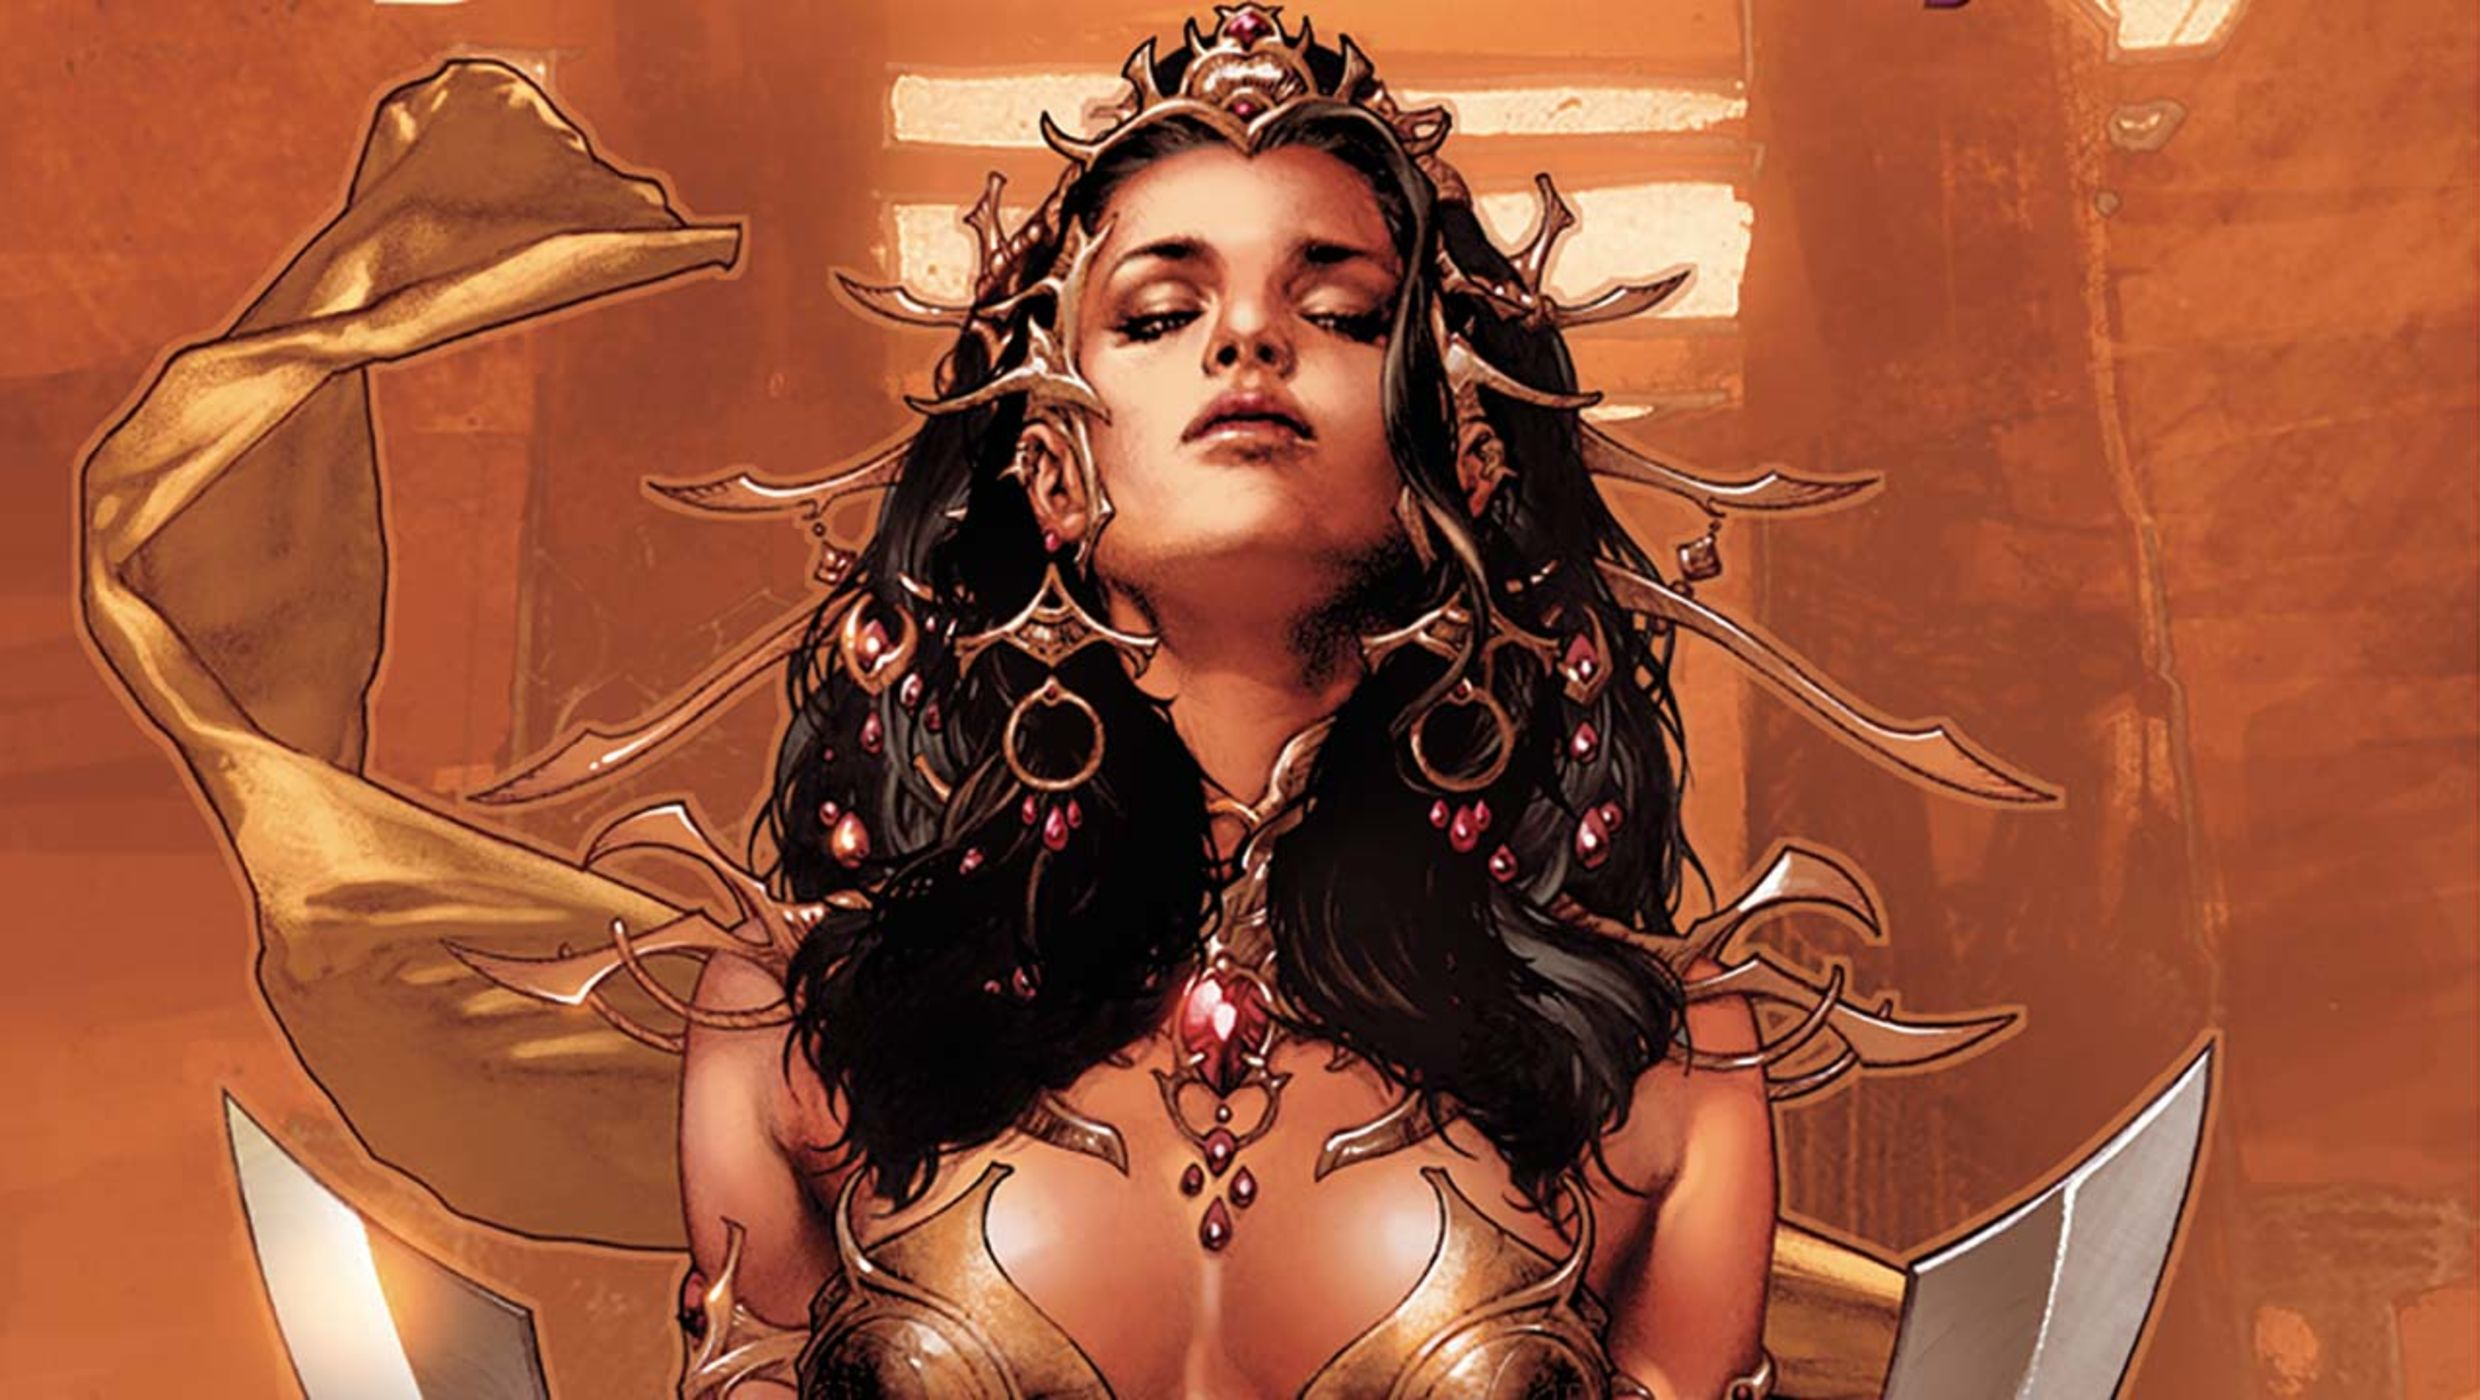 http://www.syfy.com/syfywire/dejah-thoris-amy-chu-resurrects-the-princess-of-mars-in-new-dynamite-series